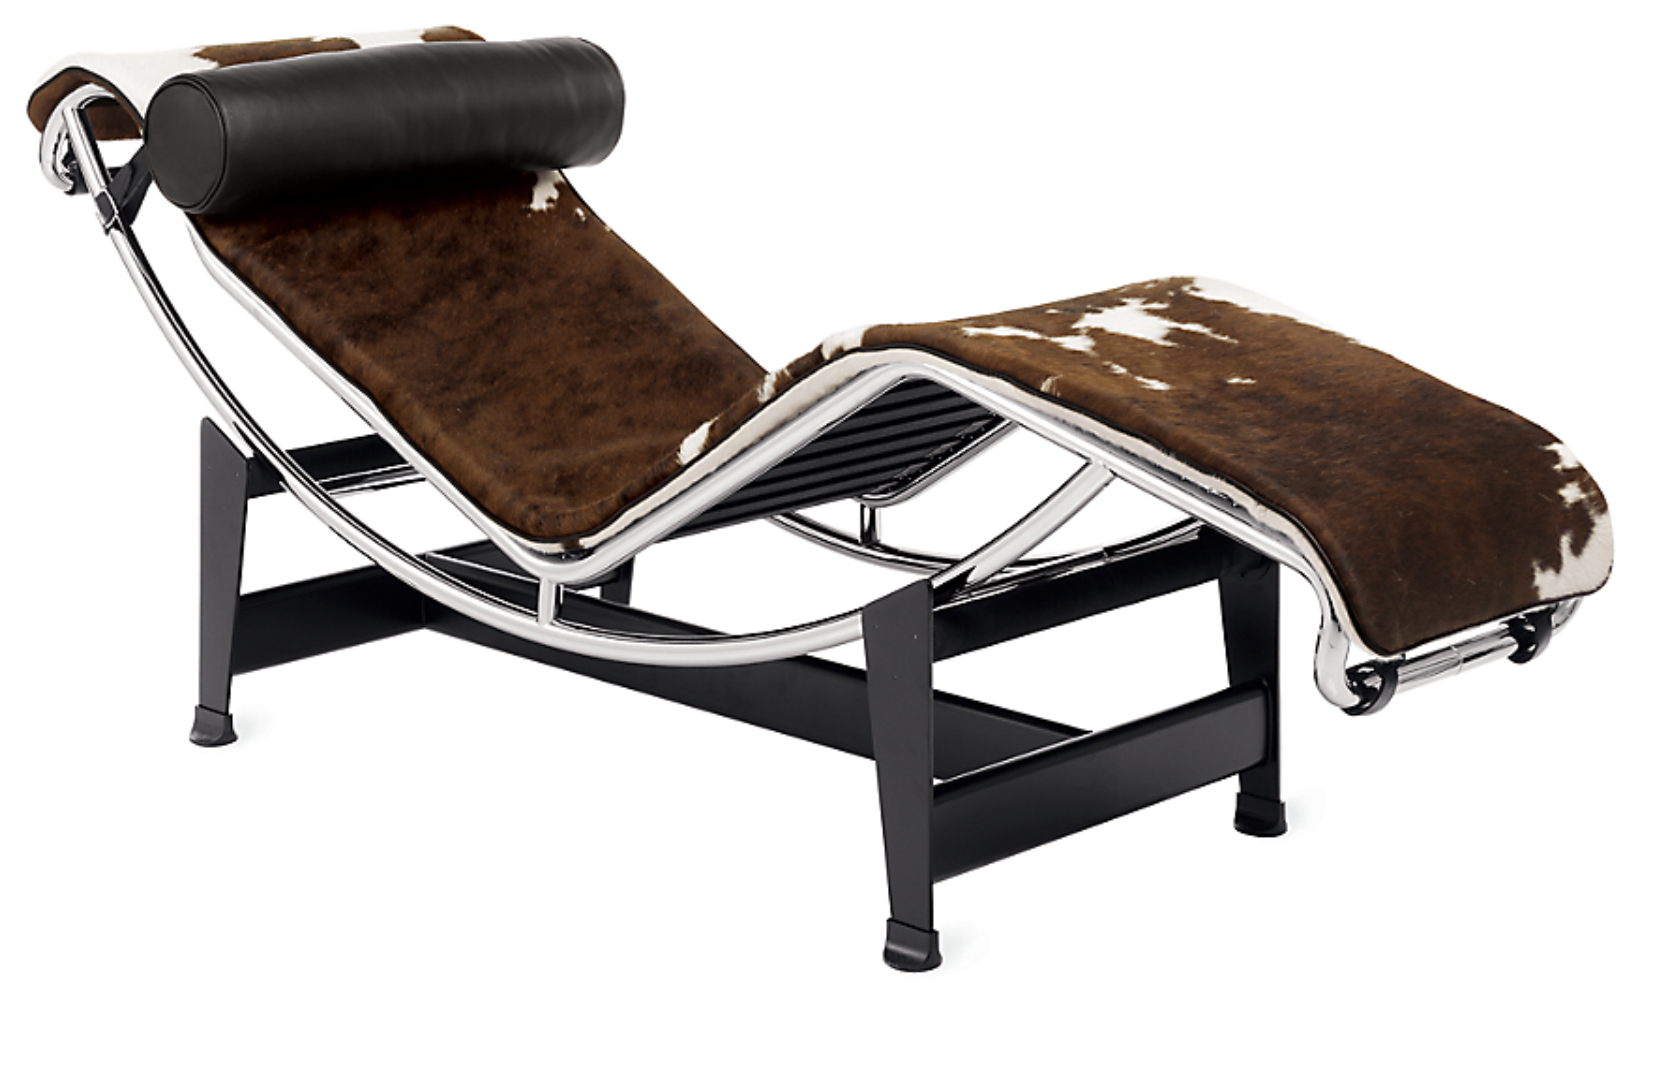 LC4 Chaise Longue Designed by Le Corbusier, Charlotte Perriand and Pierre Jeanneret | Design Within Reach